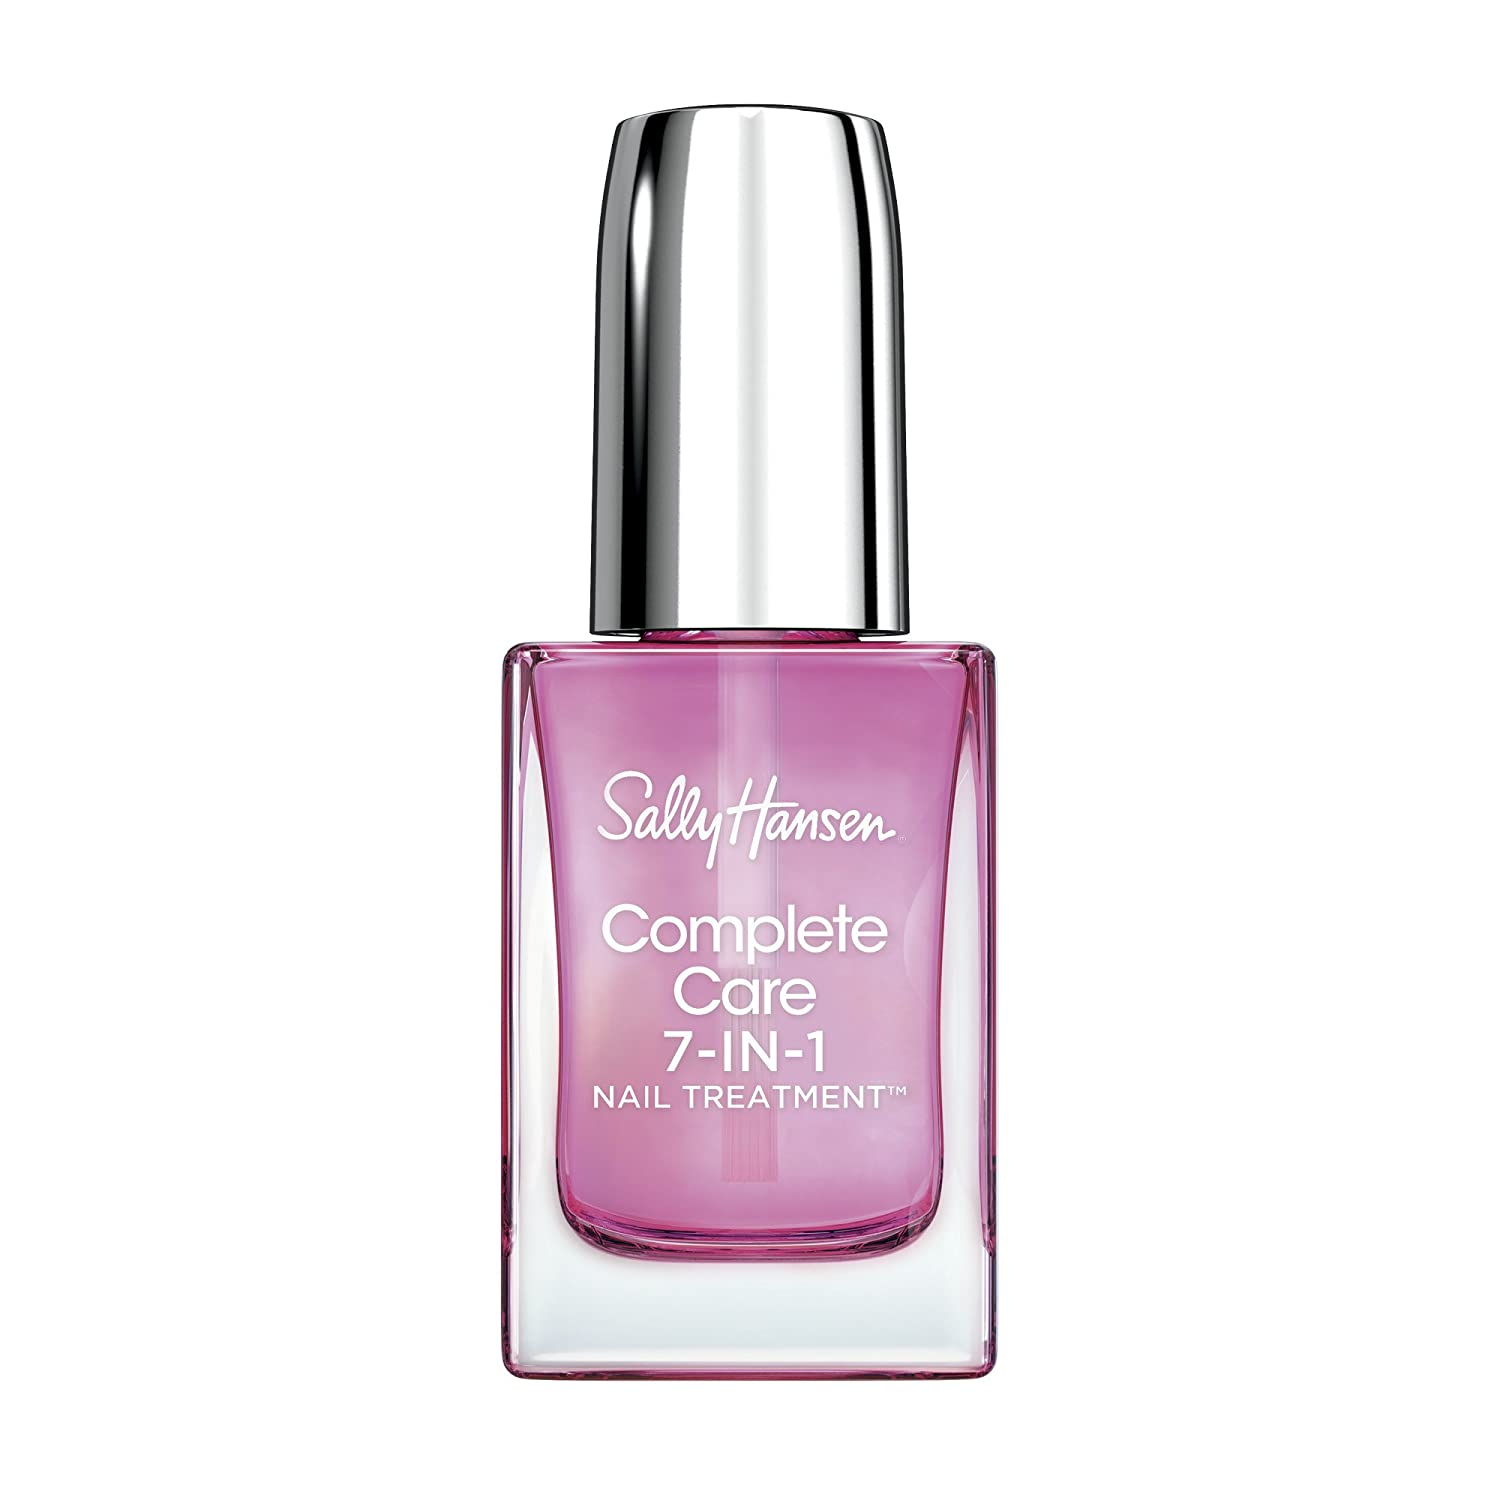 Sally Hansen - Complete Care 7-in-1 Nail Treatment Coty 30080451000